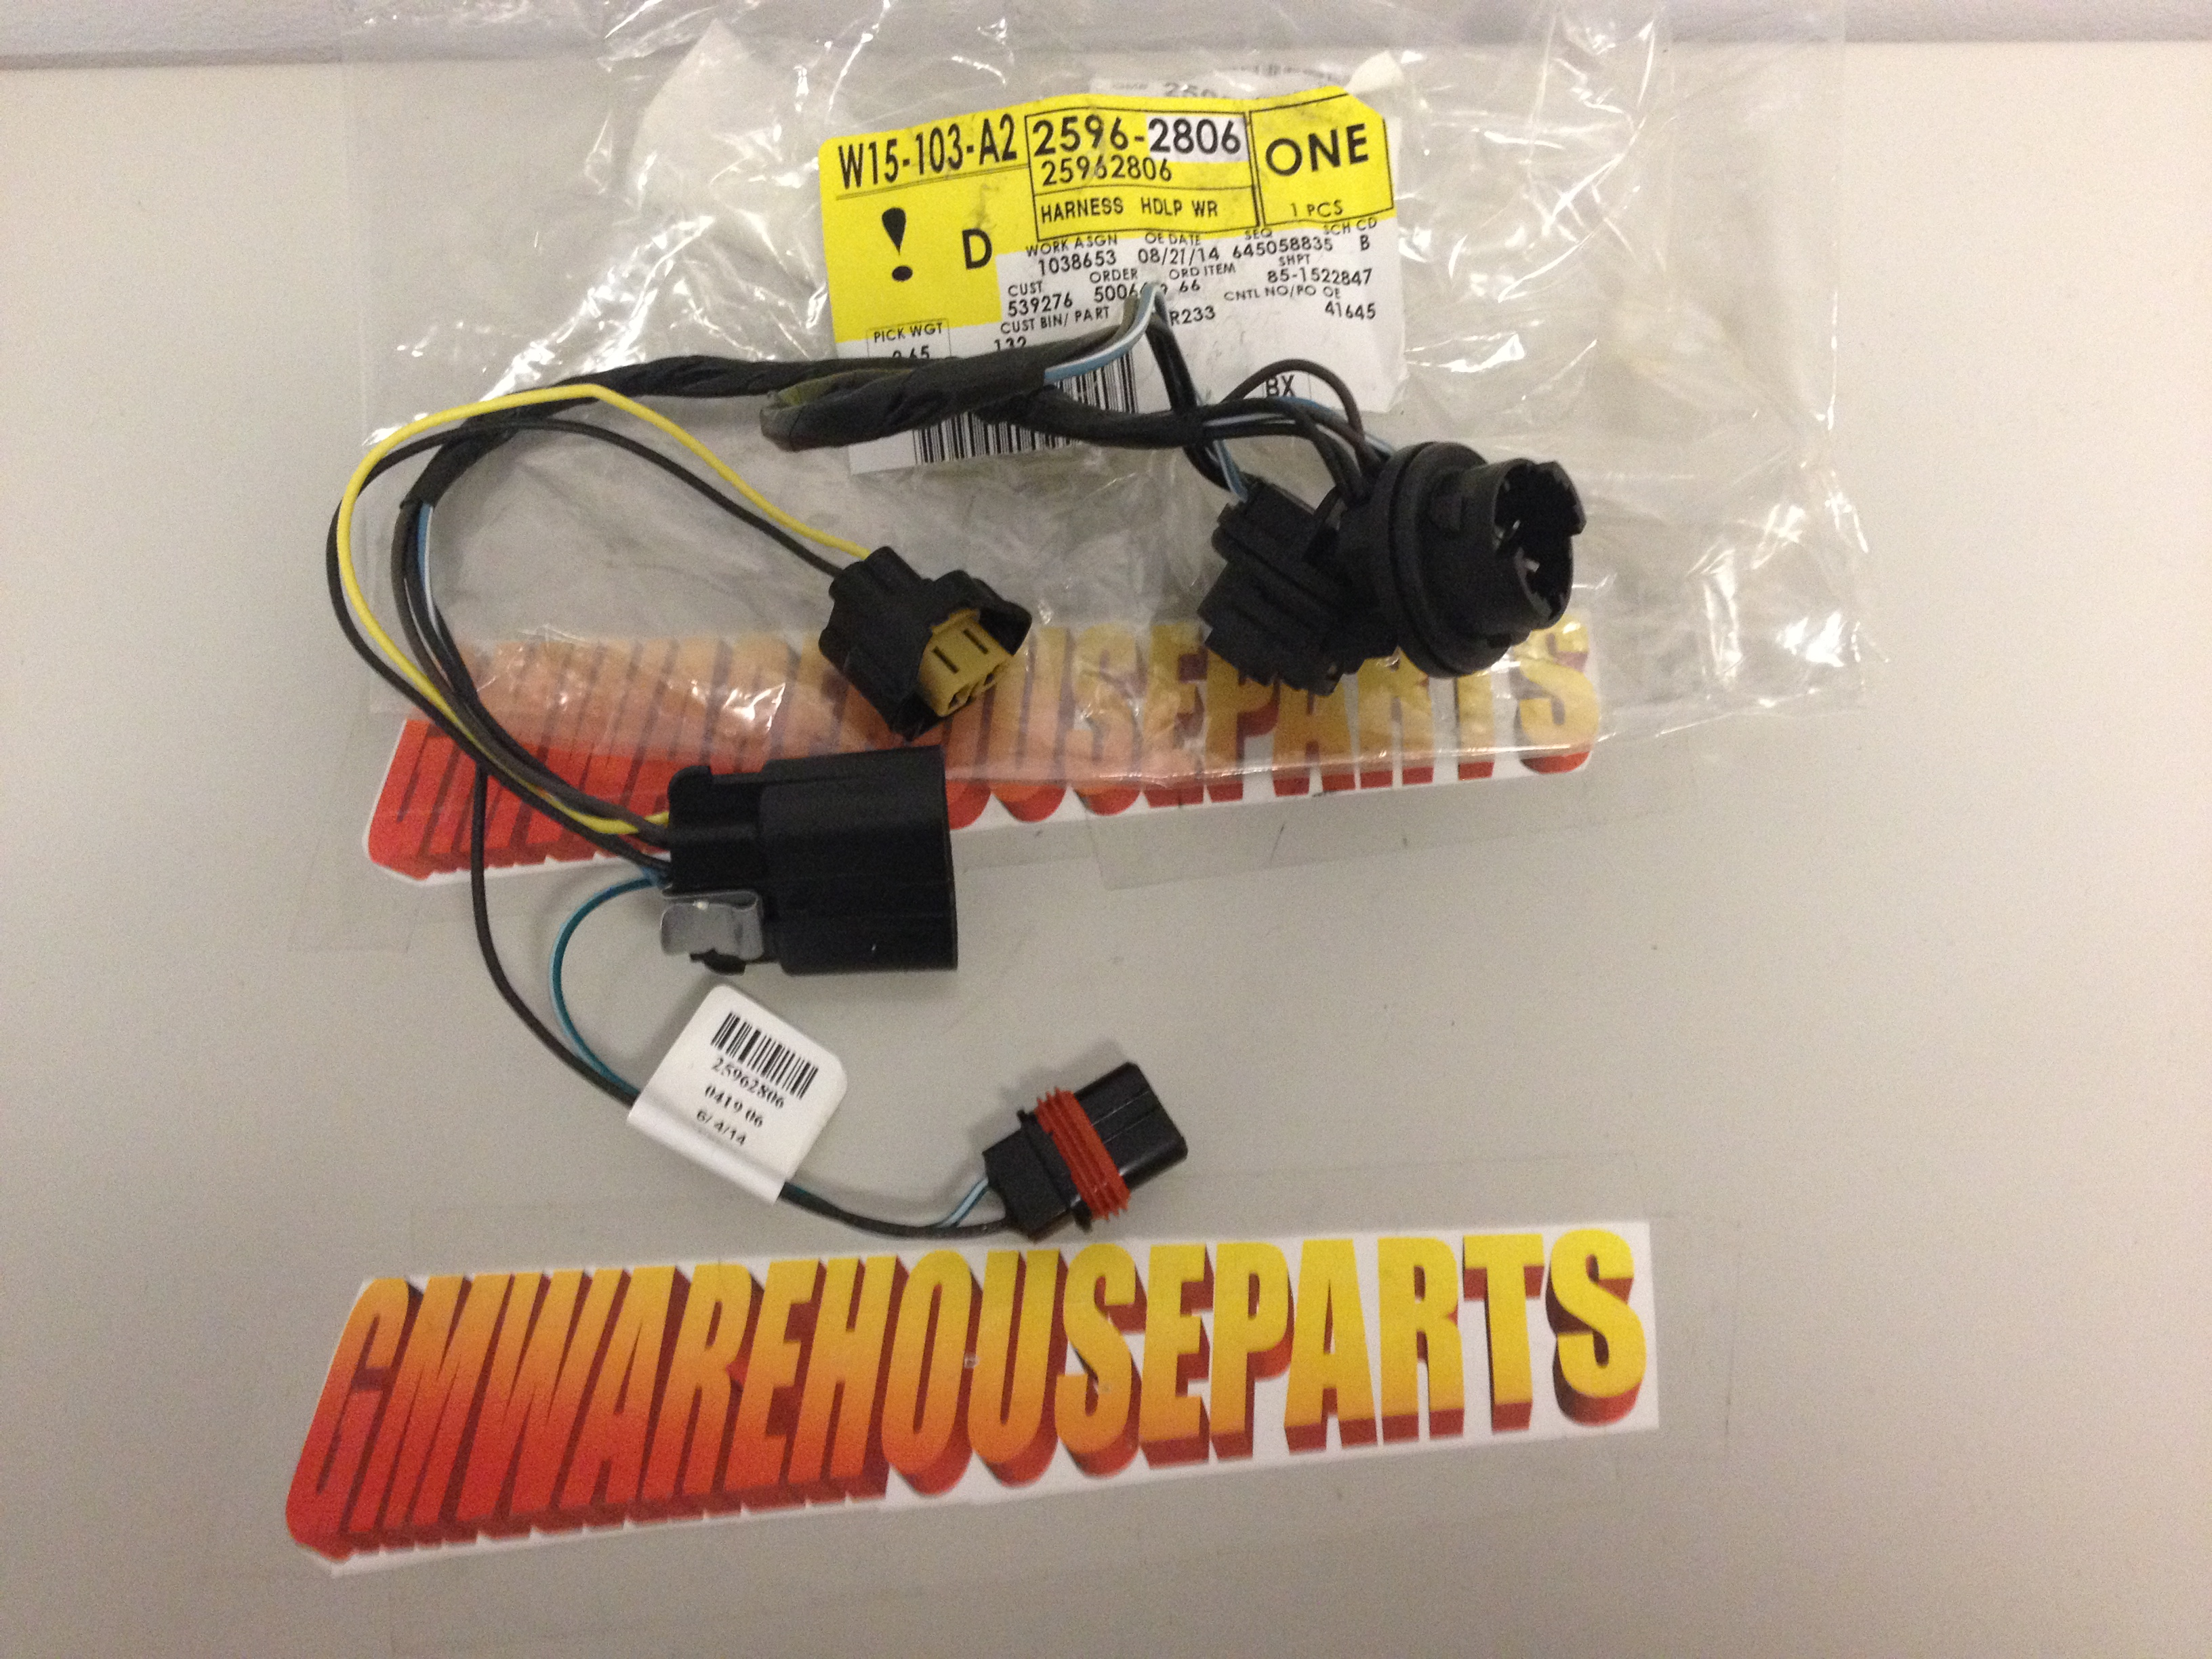 chevy silverado headlight wiring harness new gm 2007 2013 chevy silverado headlight wiring harness new gm 25962806